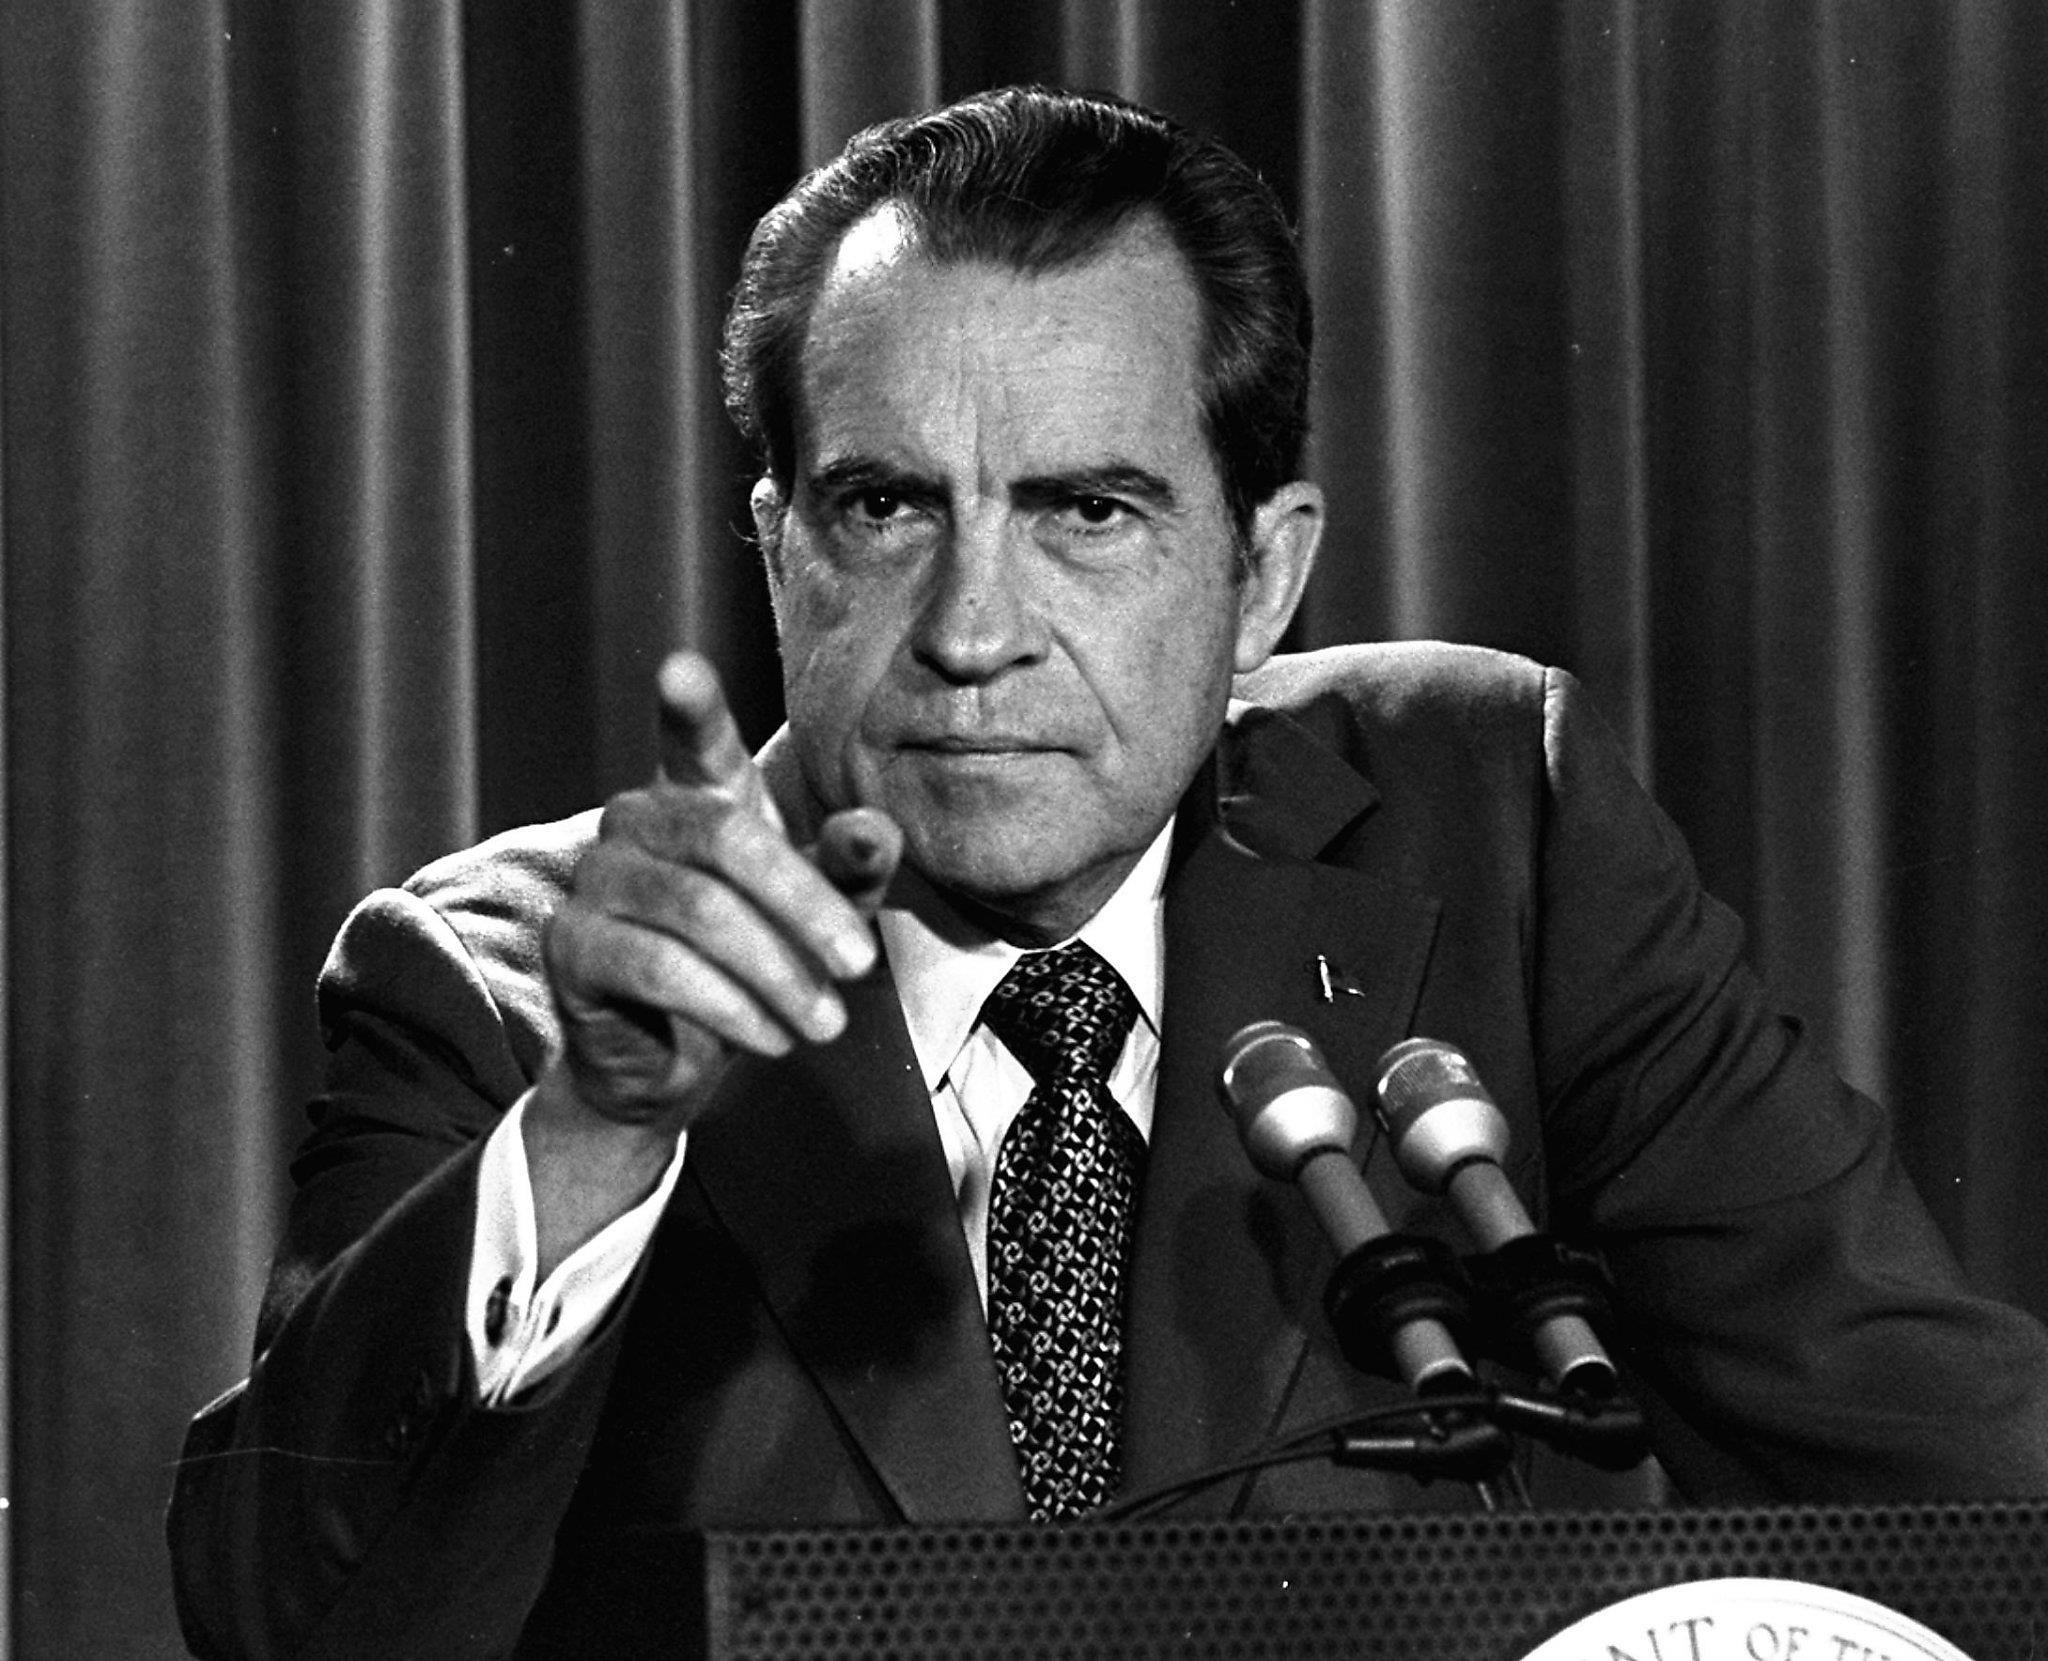 Nixon Administration Cabinet Donald Trumps Attacks On Free Press San Francisco Chronicle